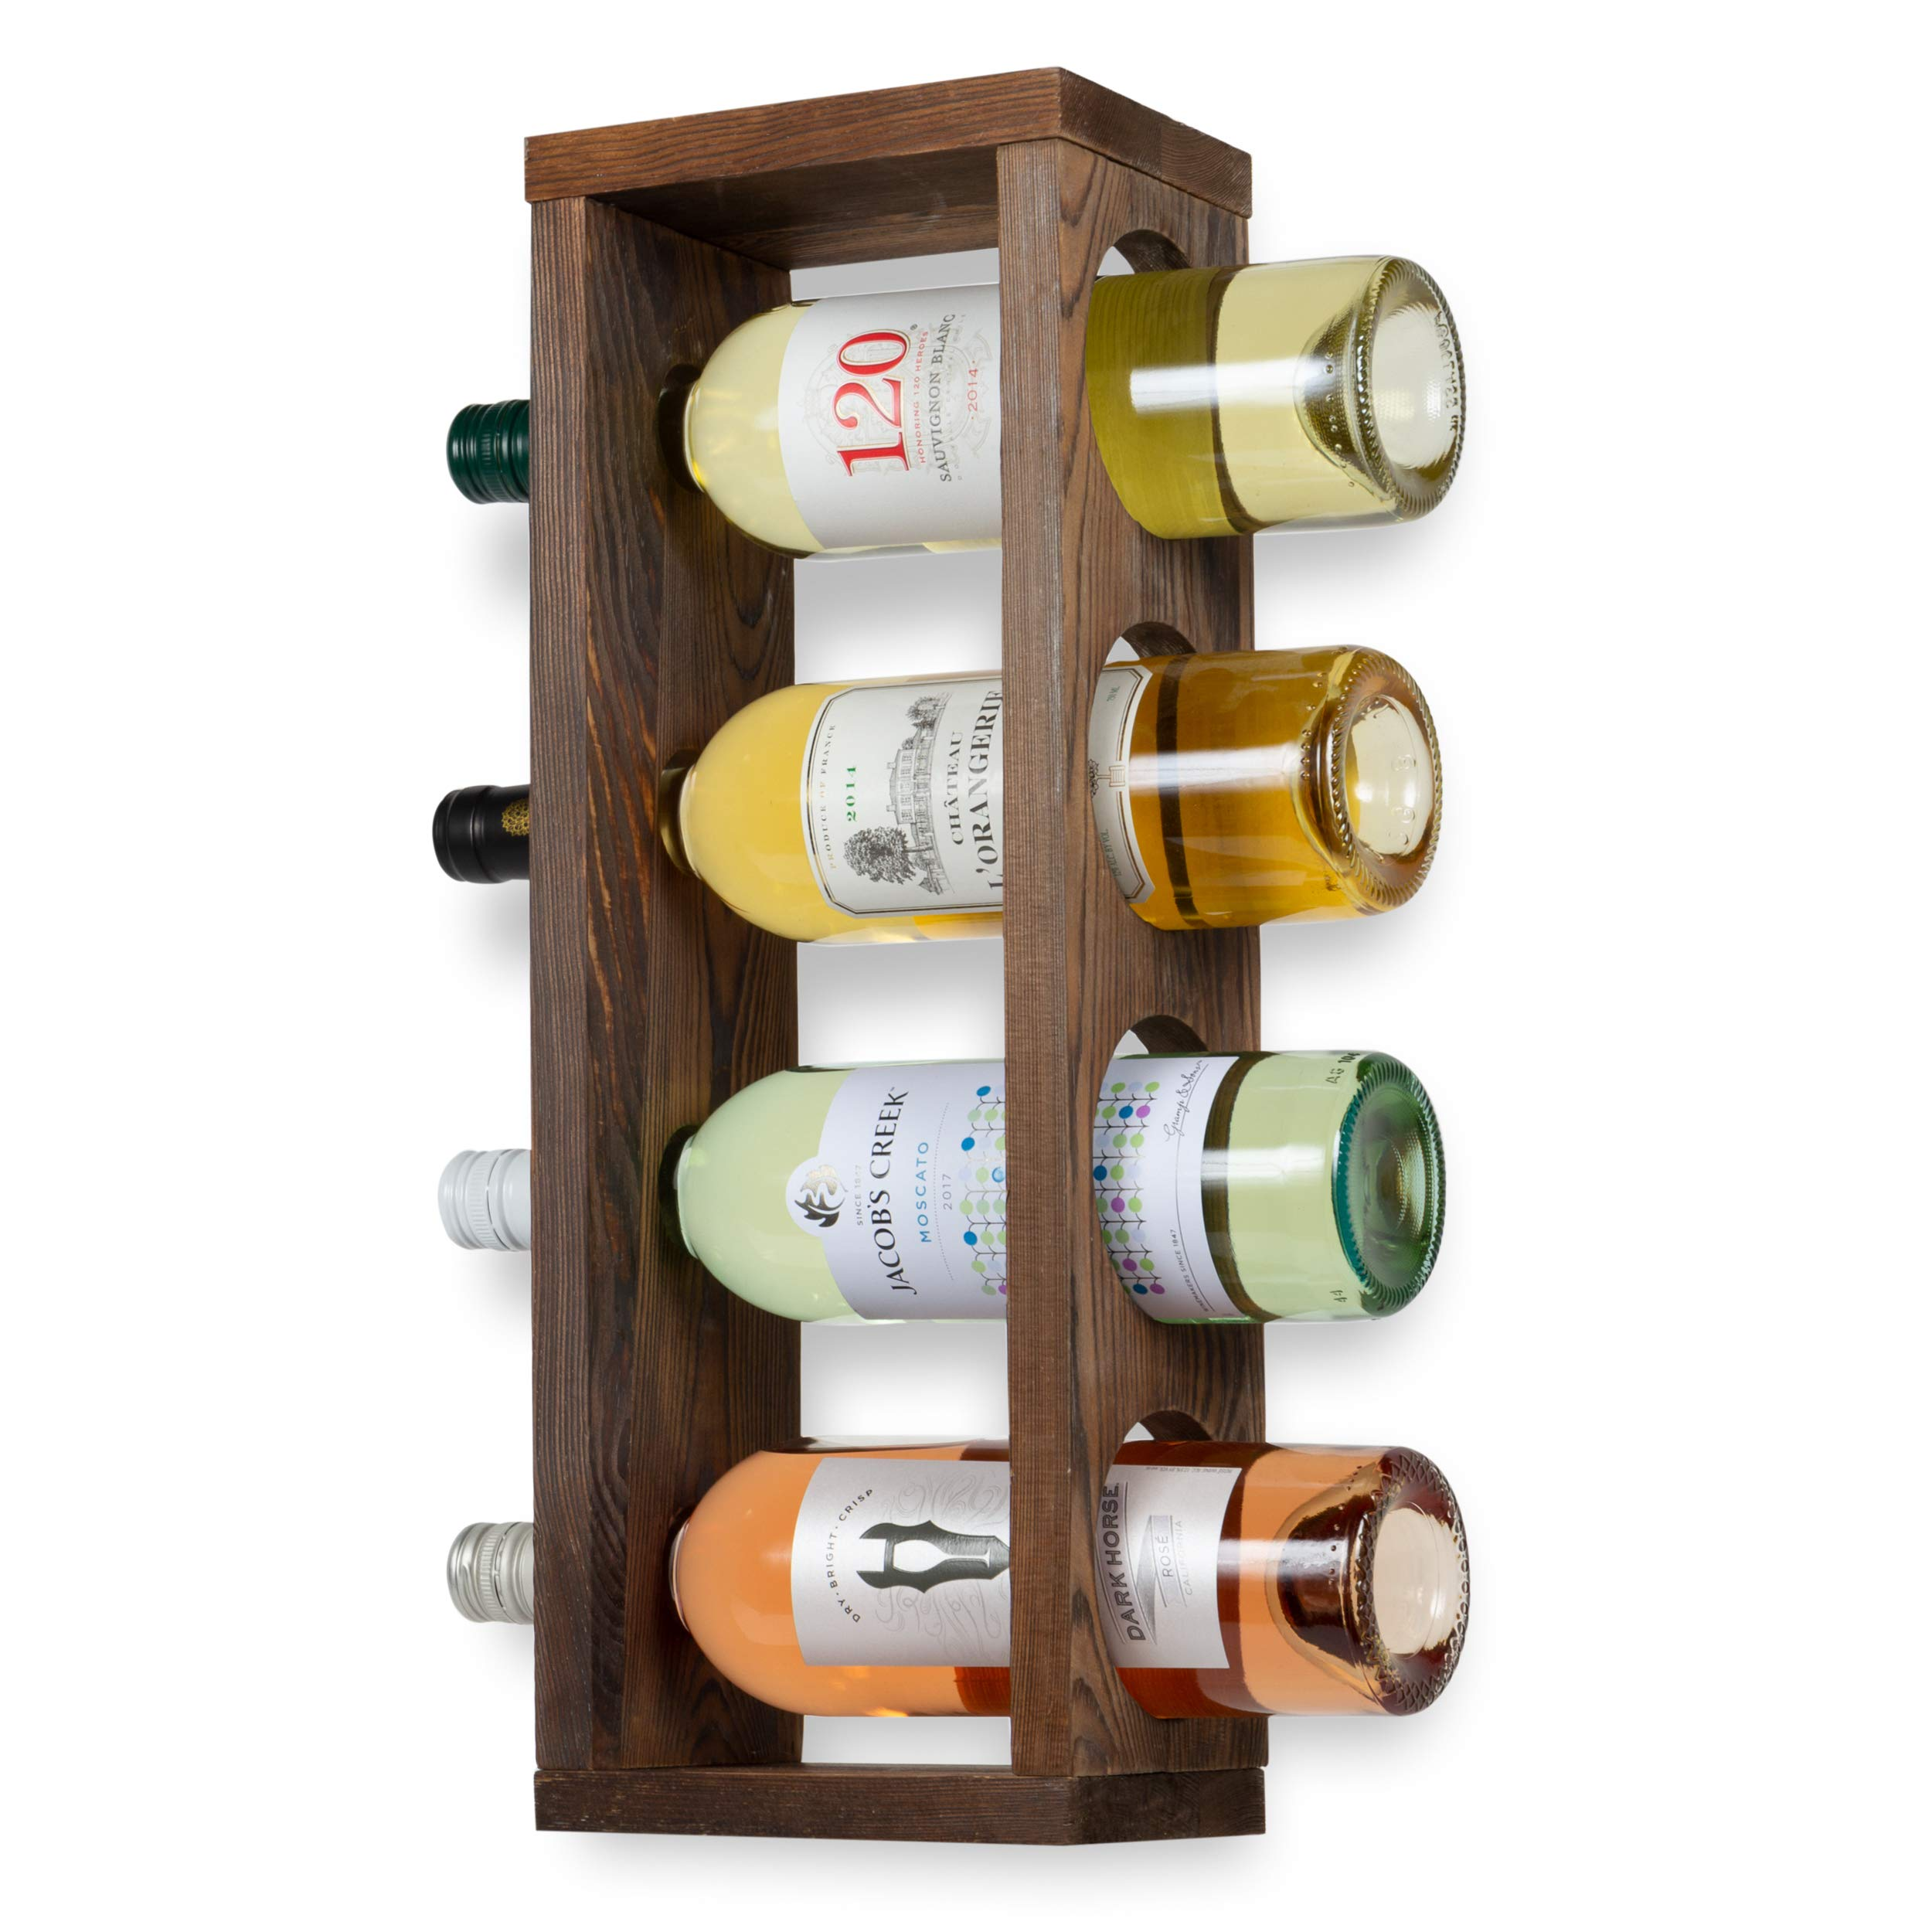 Rustic State Sonoma Wood Wine Rack Wall Mounted Bottle Holder, Holds 4 Bottles by Rustic State